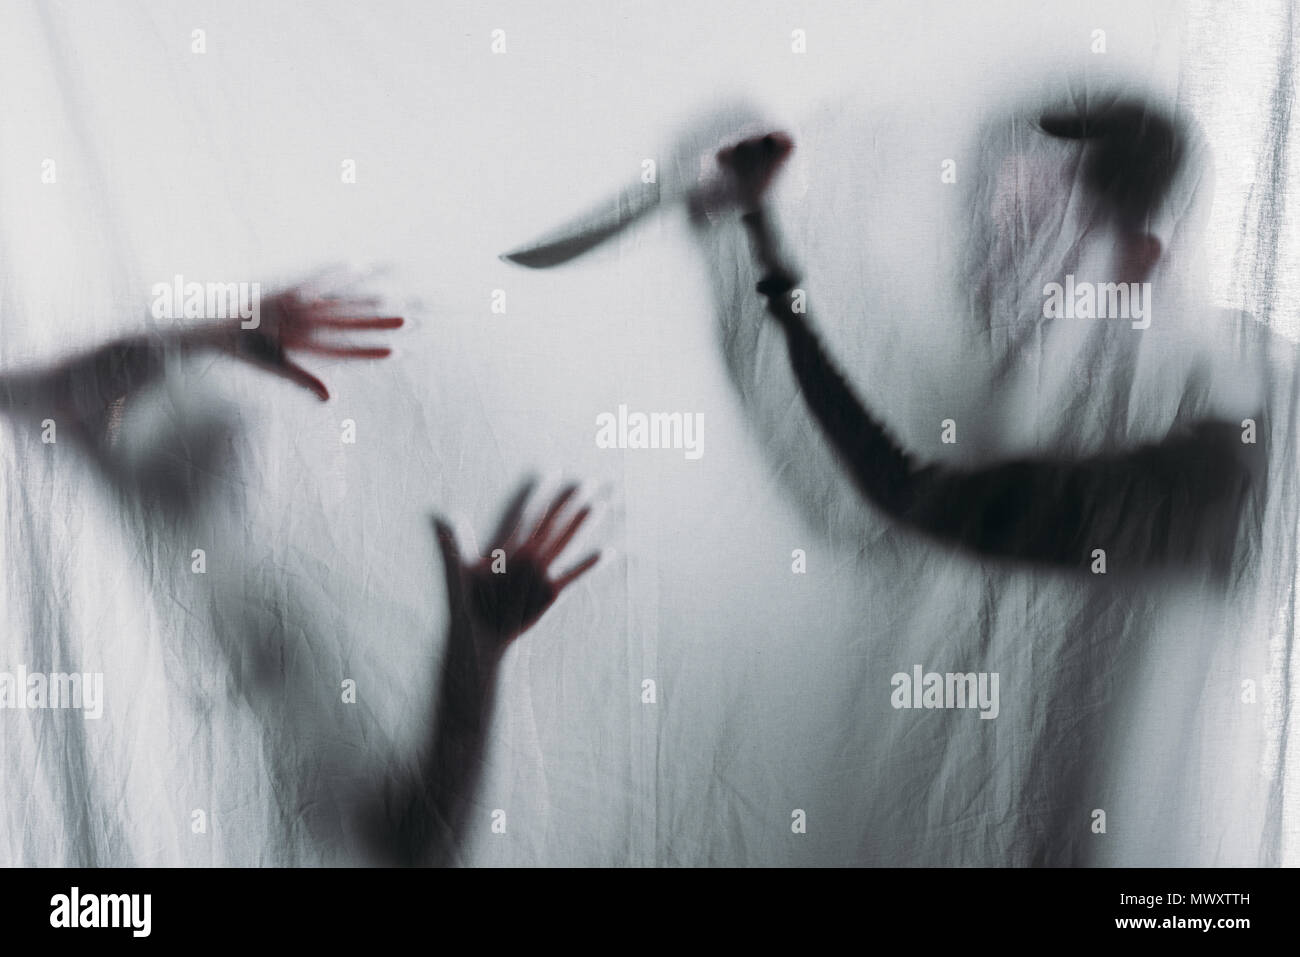 silhouette of someone holding knife and murdering victim, crime concept - Stock Image